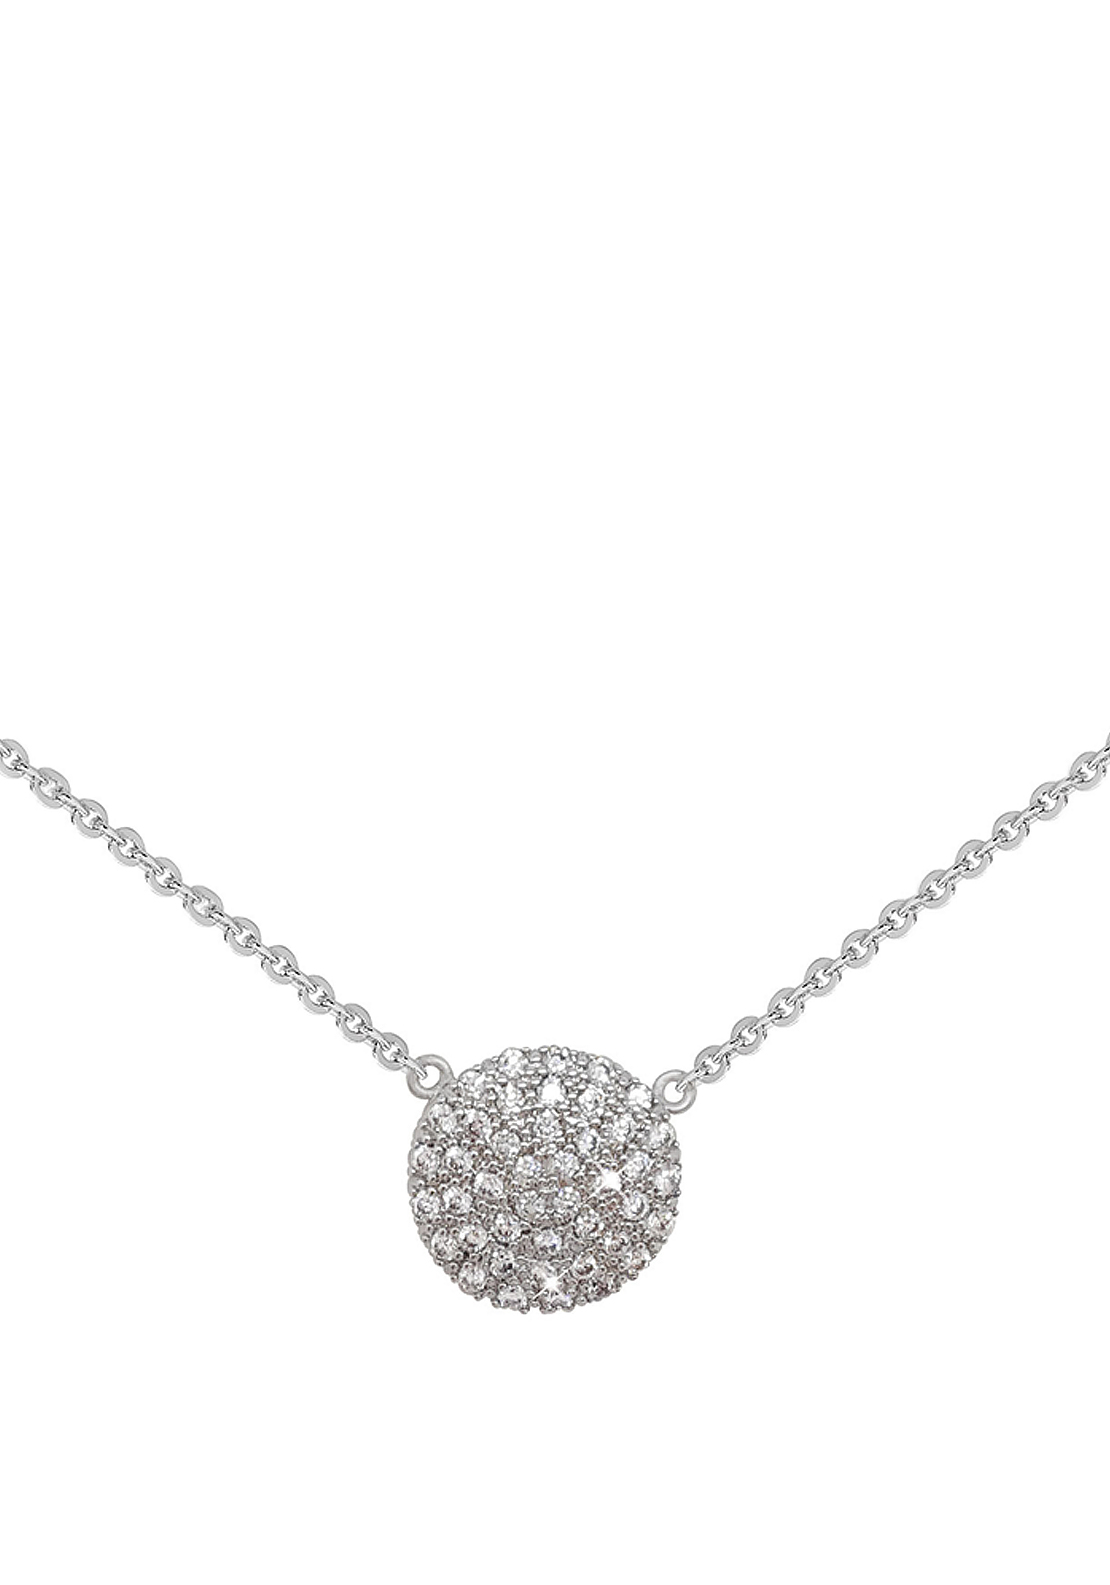 Tipperary Crystal Round Pave Set Pendant Necklace, Silver